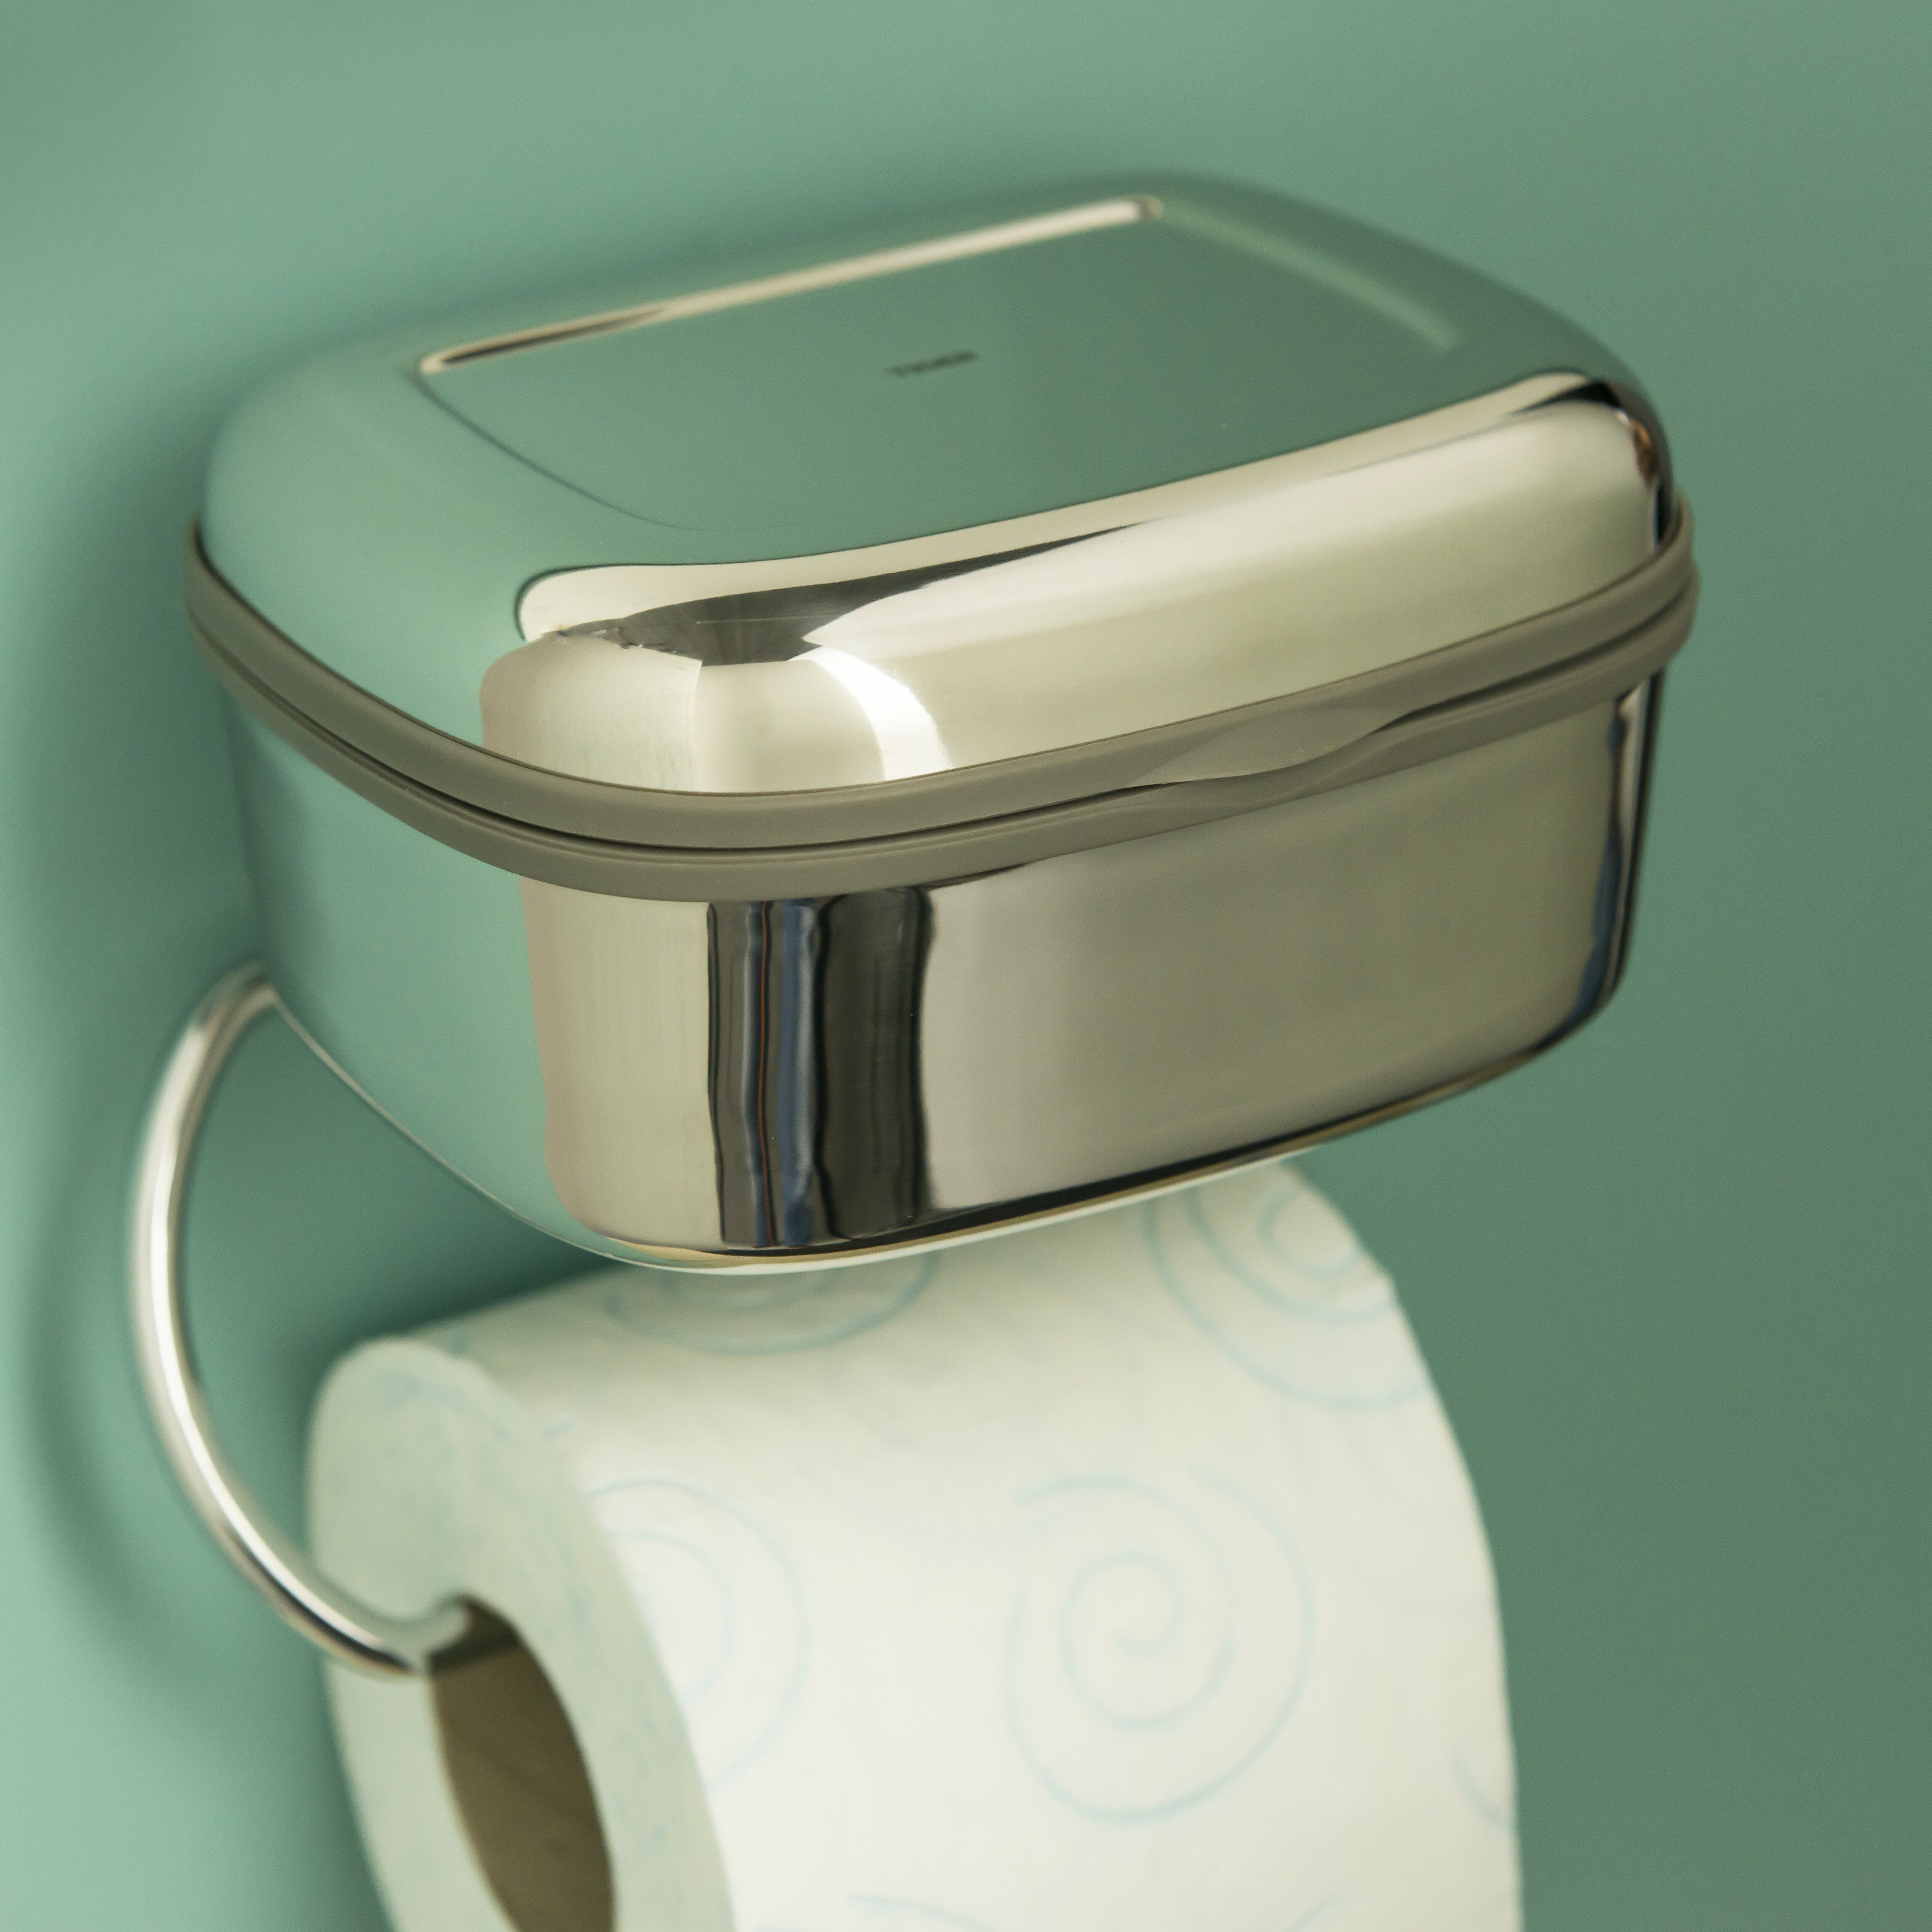 Tiger combi wall mounted toilet roll holder reviews Glass toilet roll holder